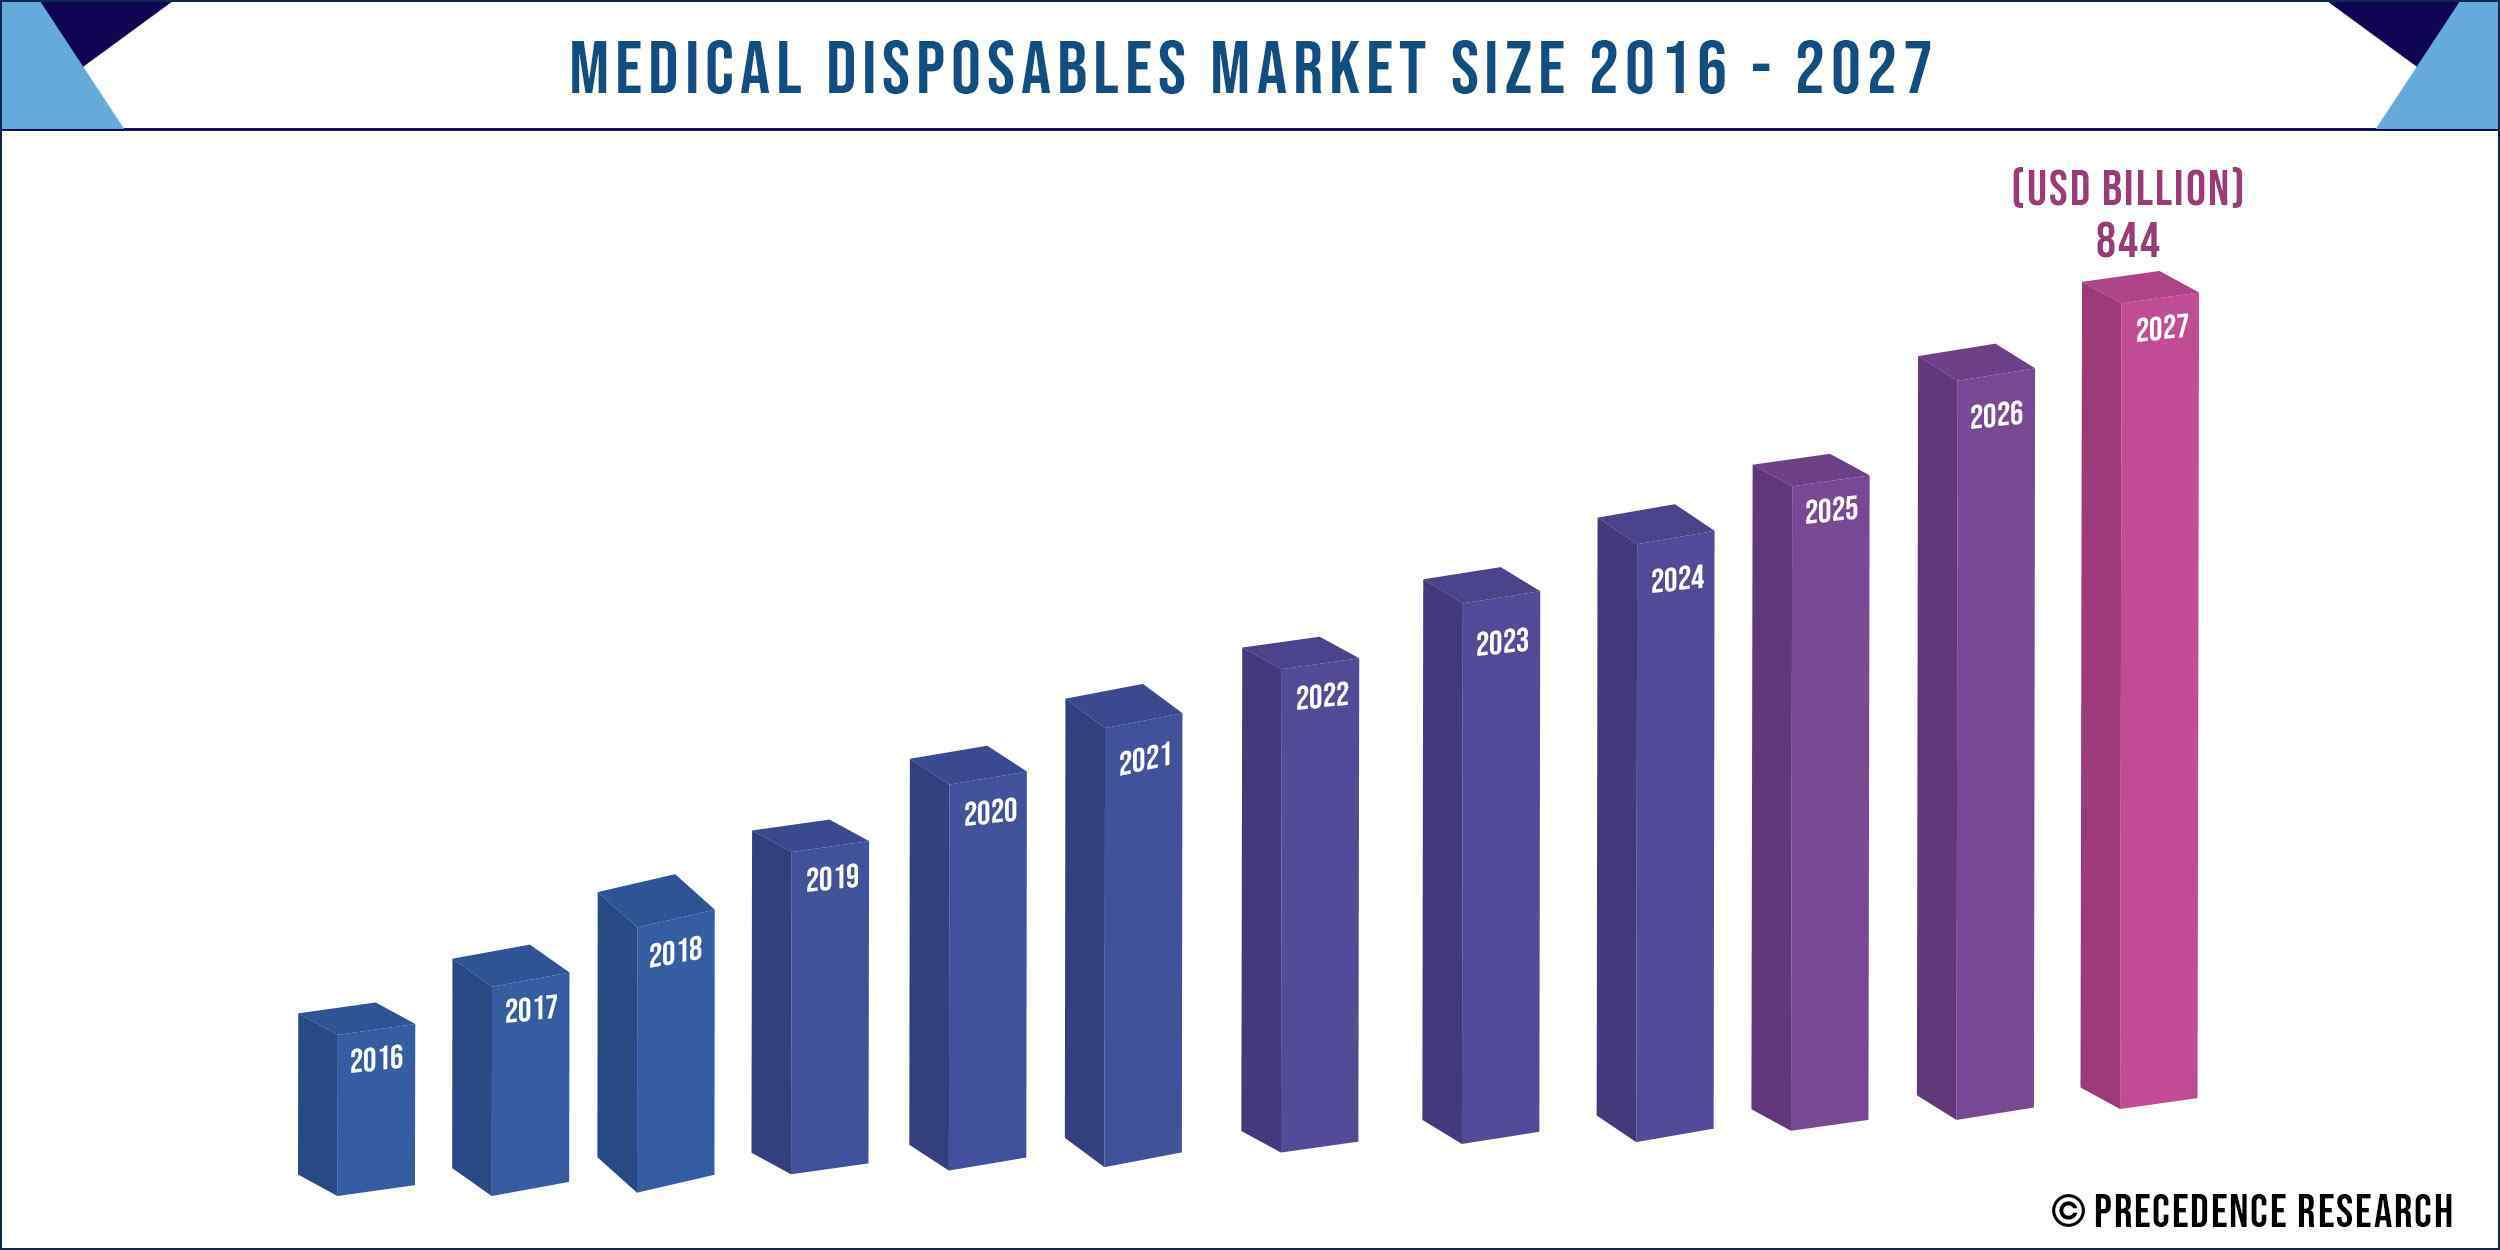 Medical Disposables Market Size 2016 to 2027